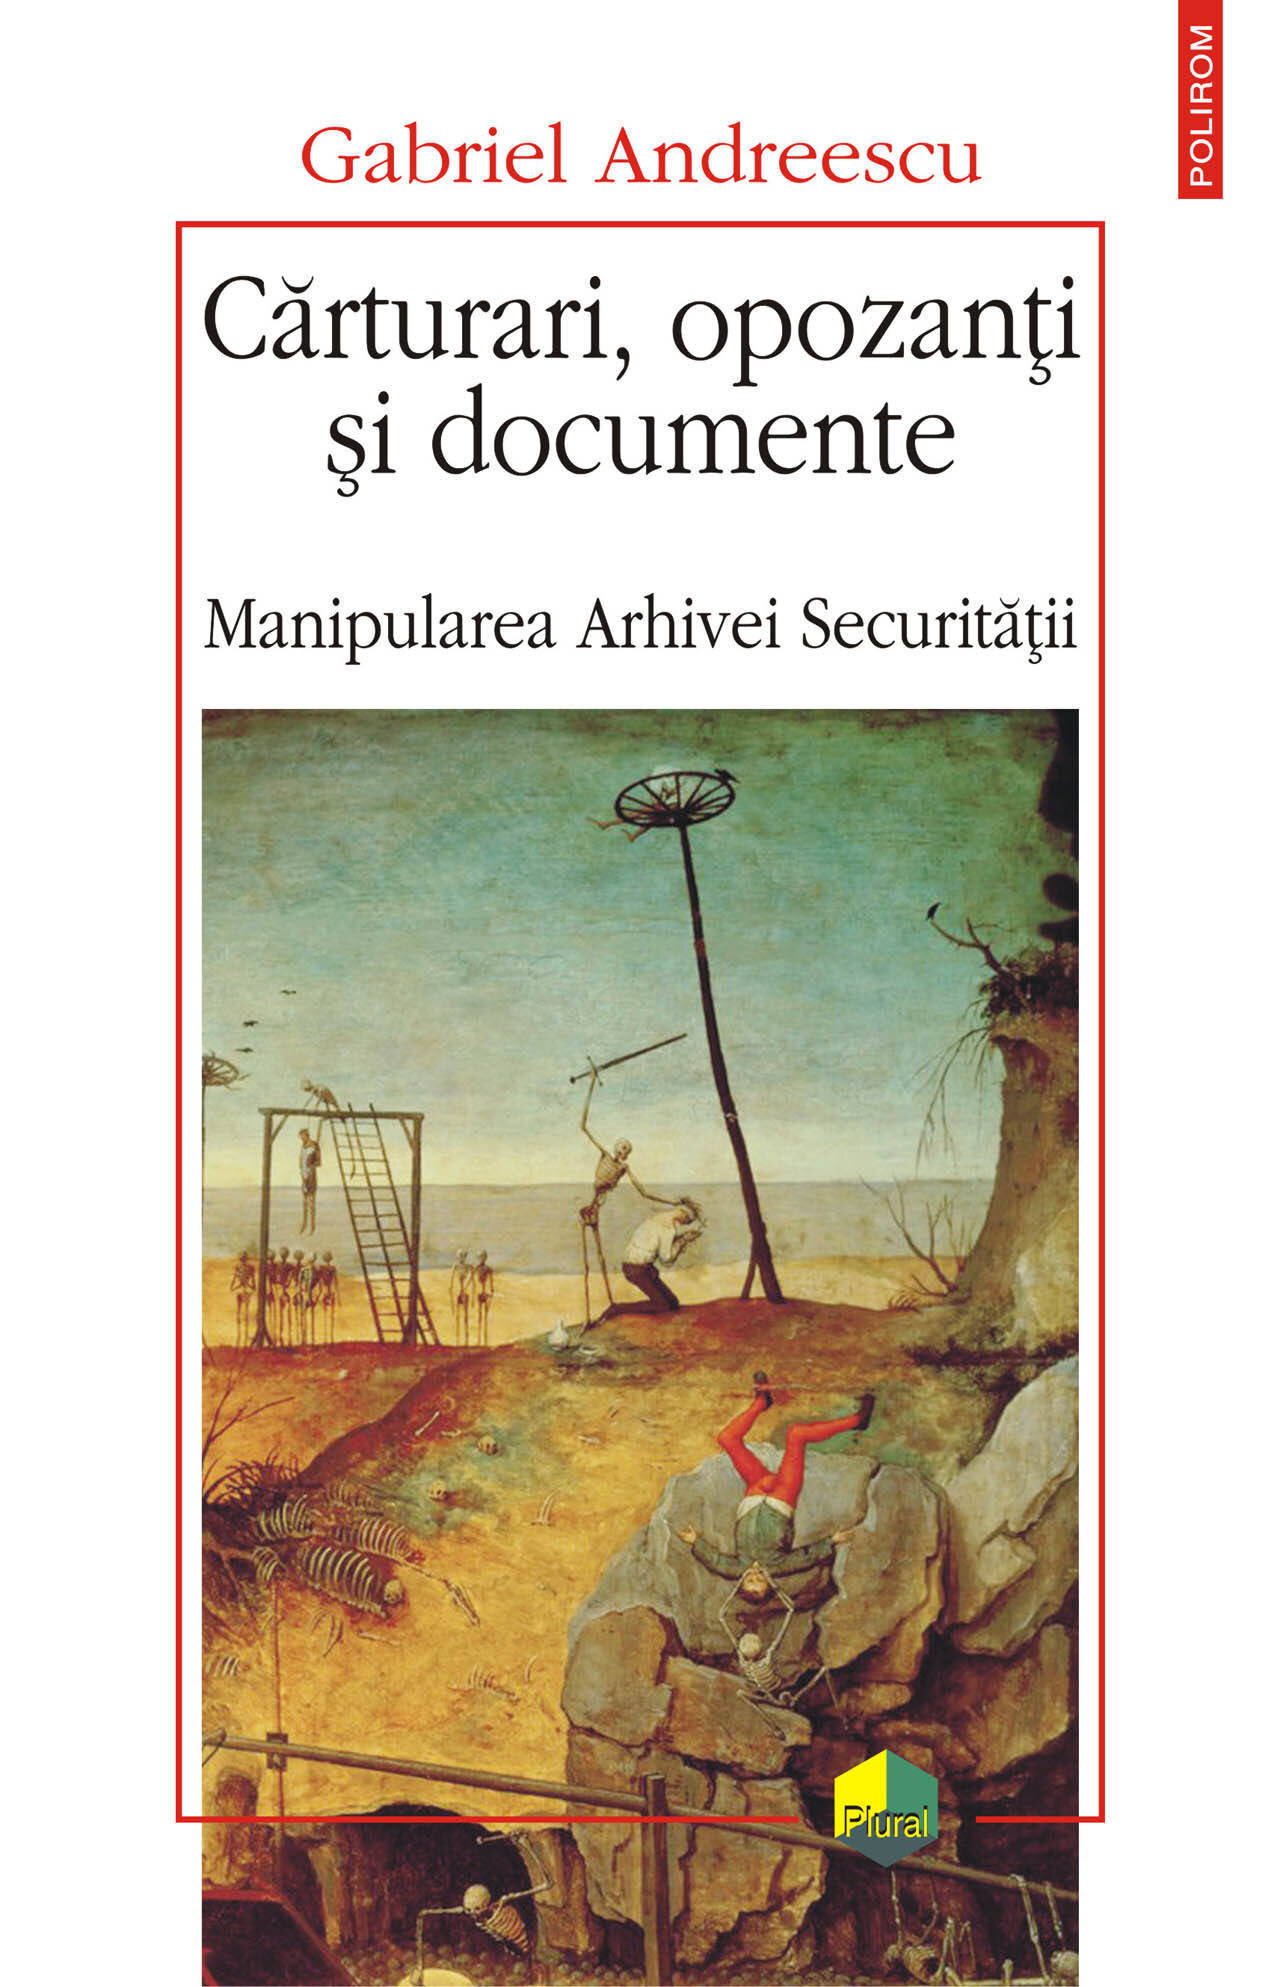 Carturari, opozanti si documente. Manipularea Arhivei Securitatii (eBook)